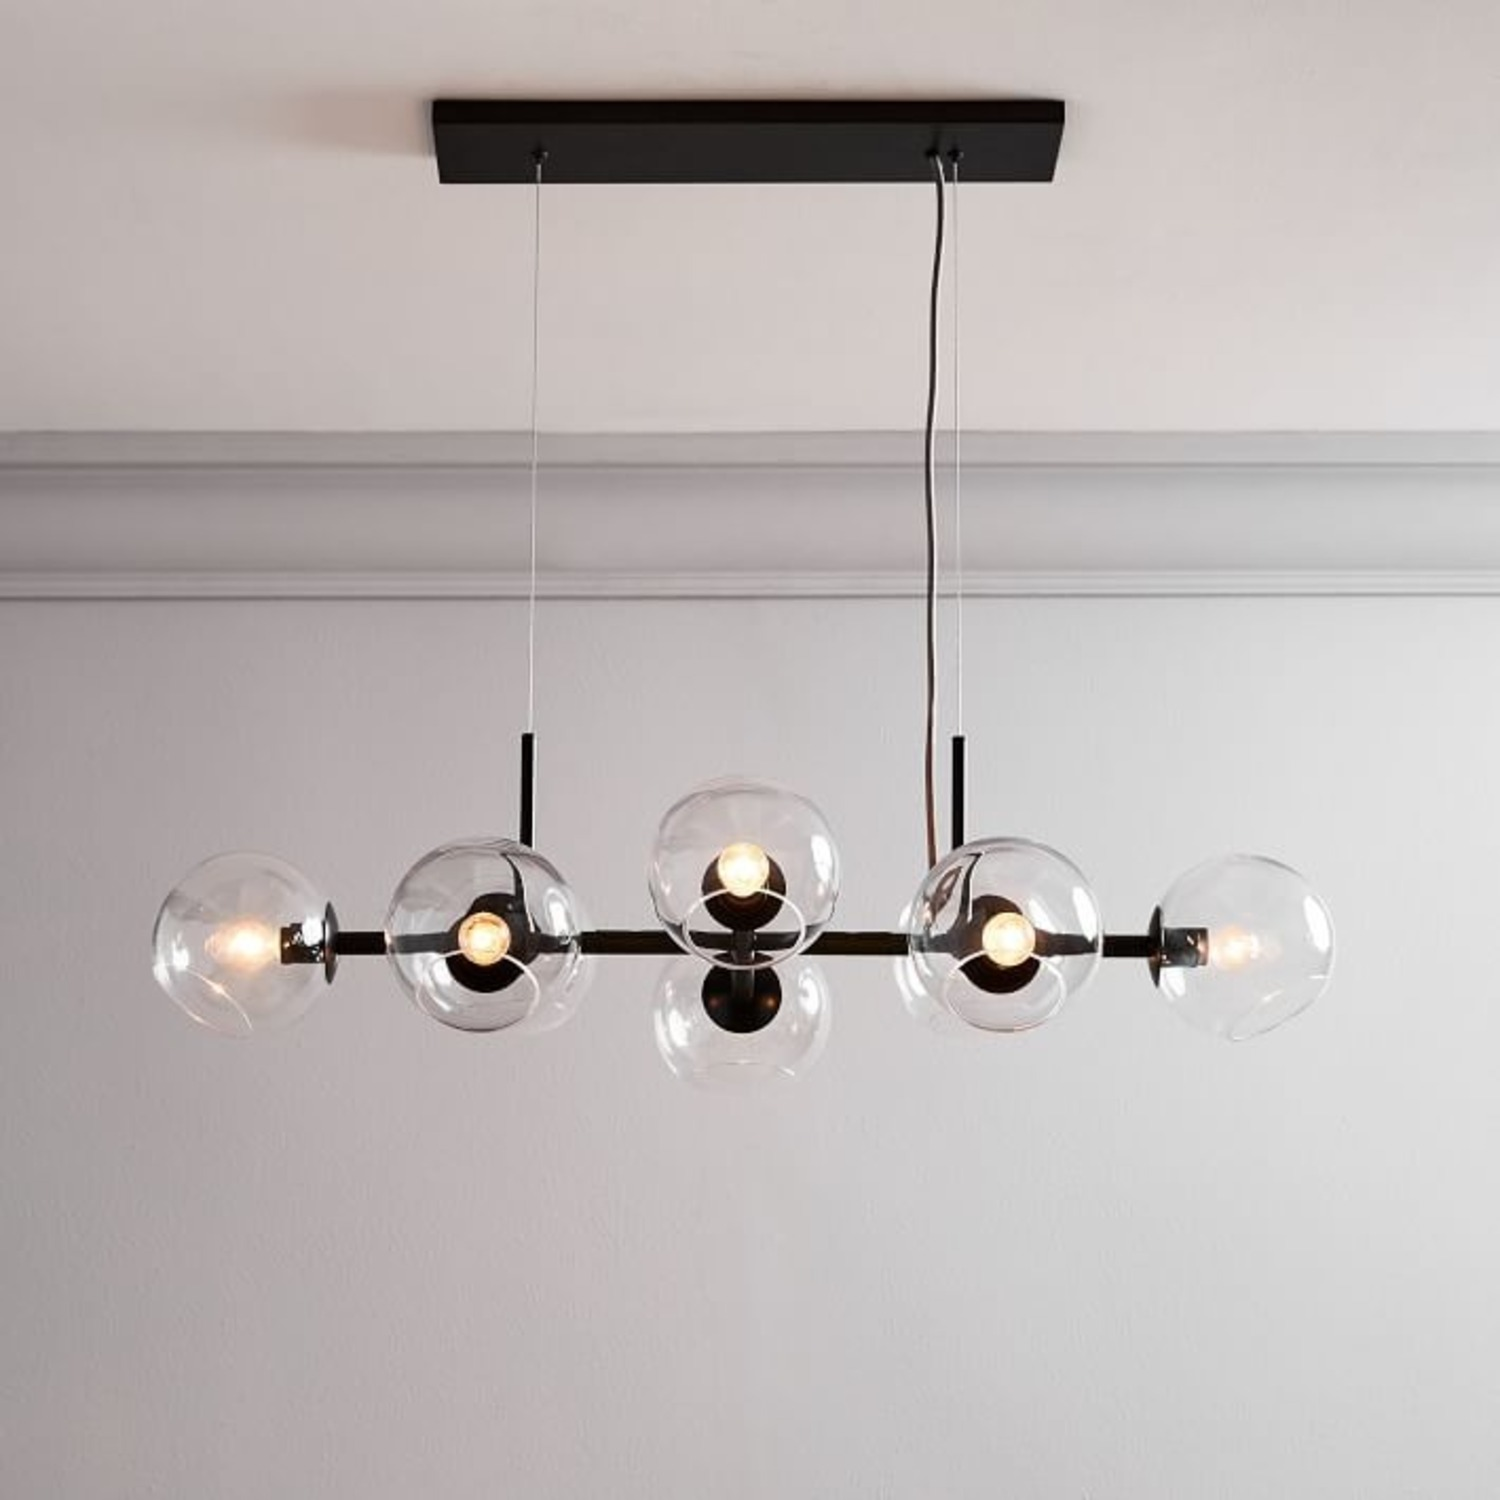 West Elm Staggered Glass Chandelier - image-0